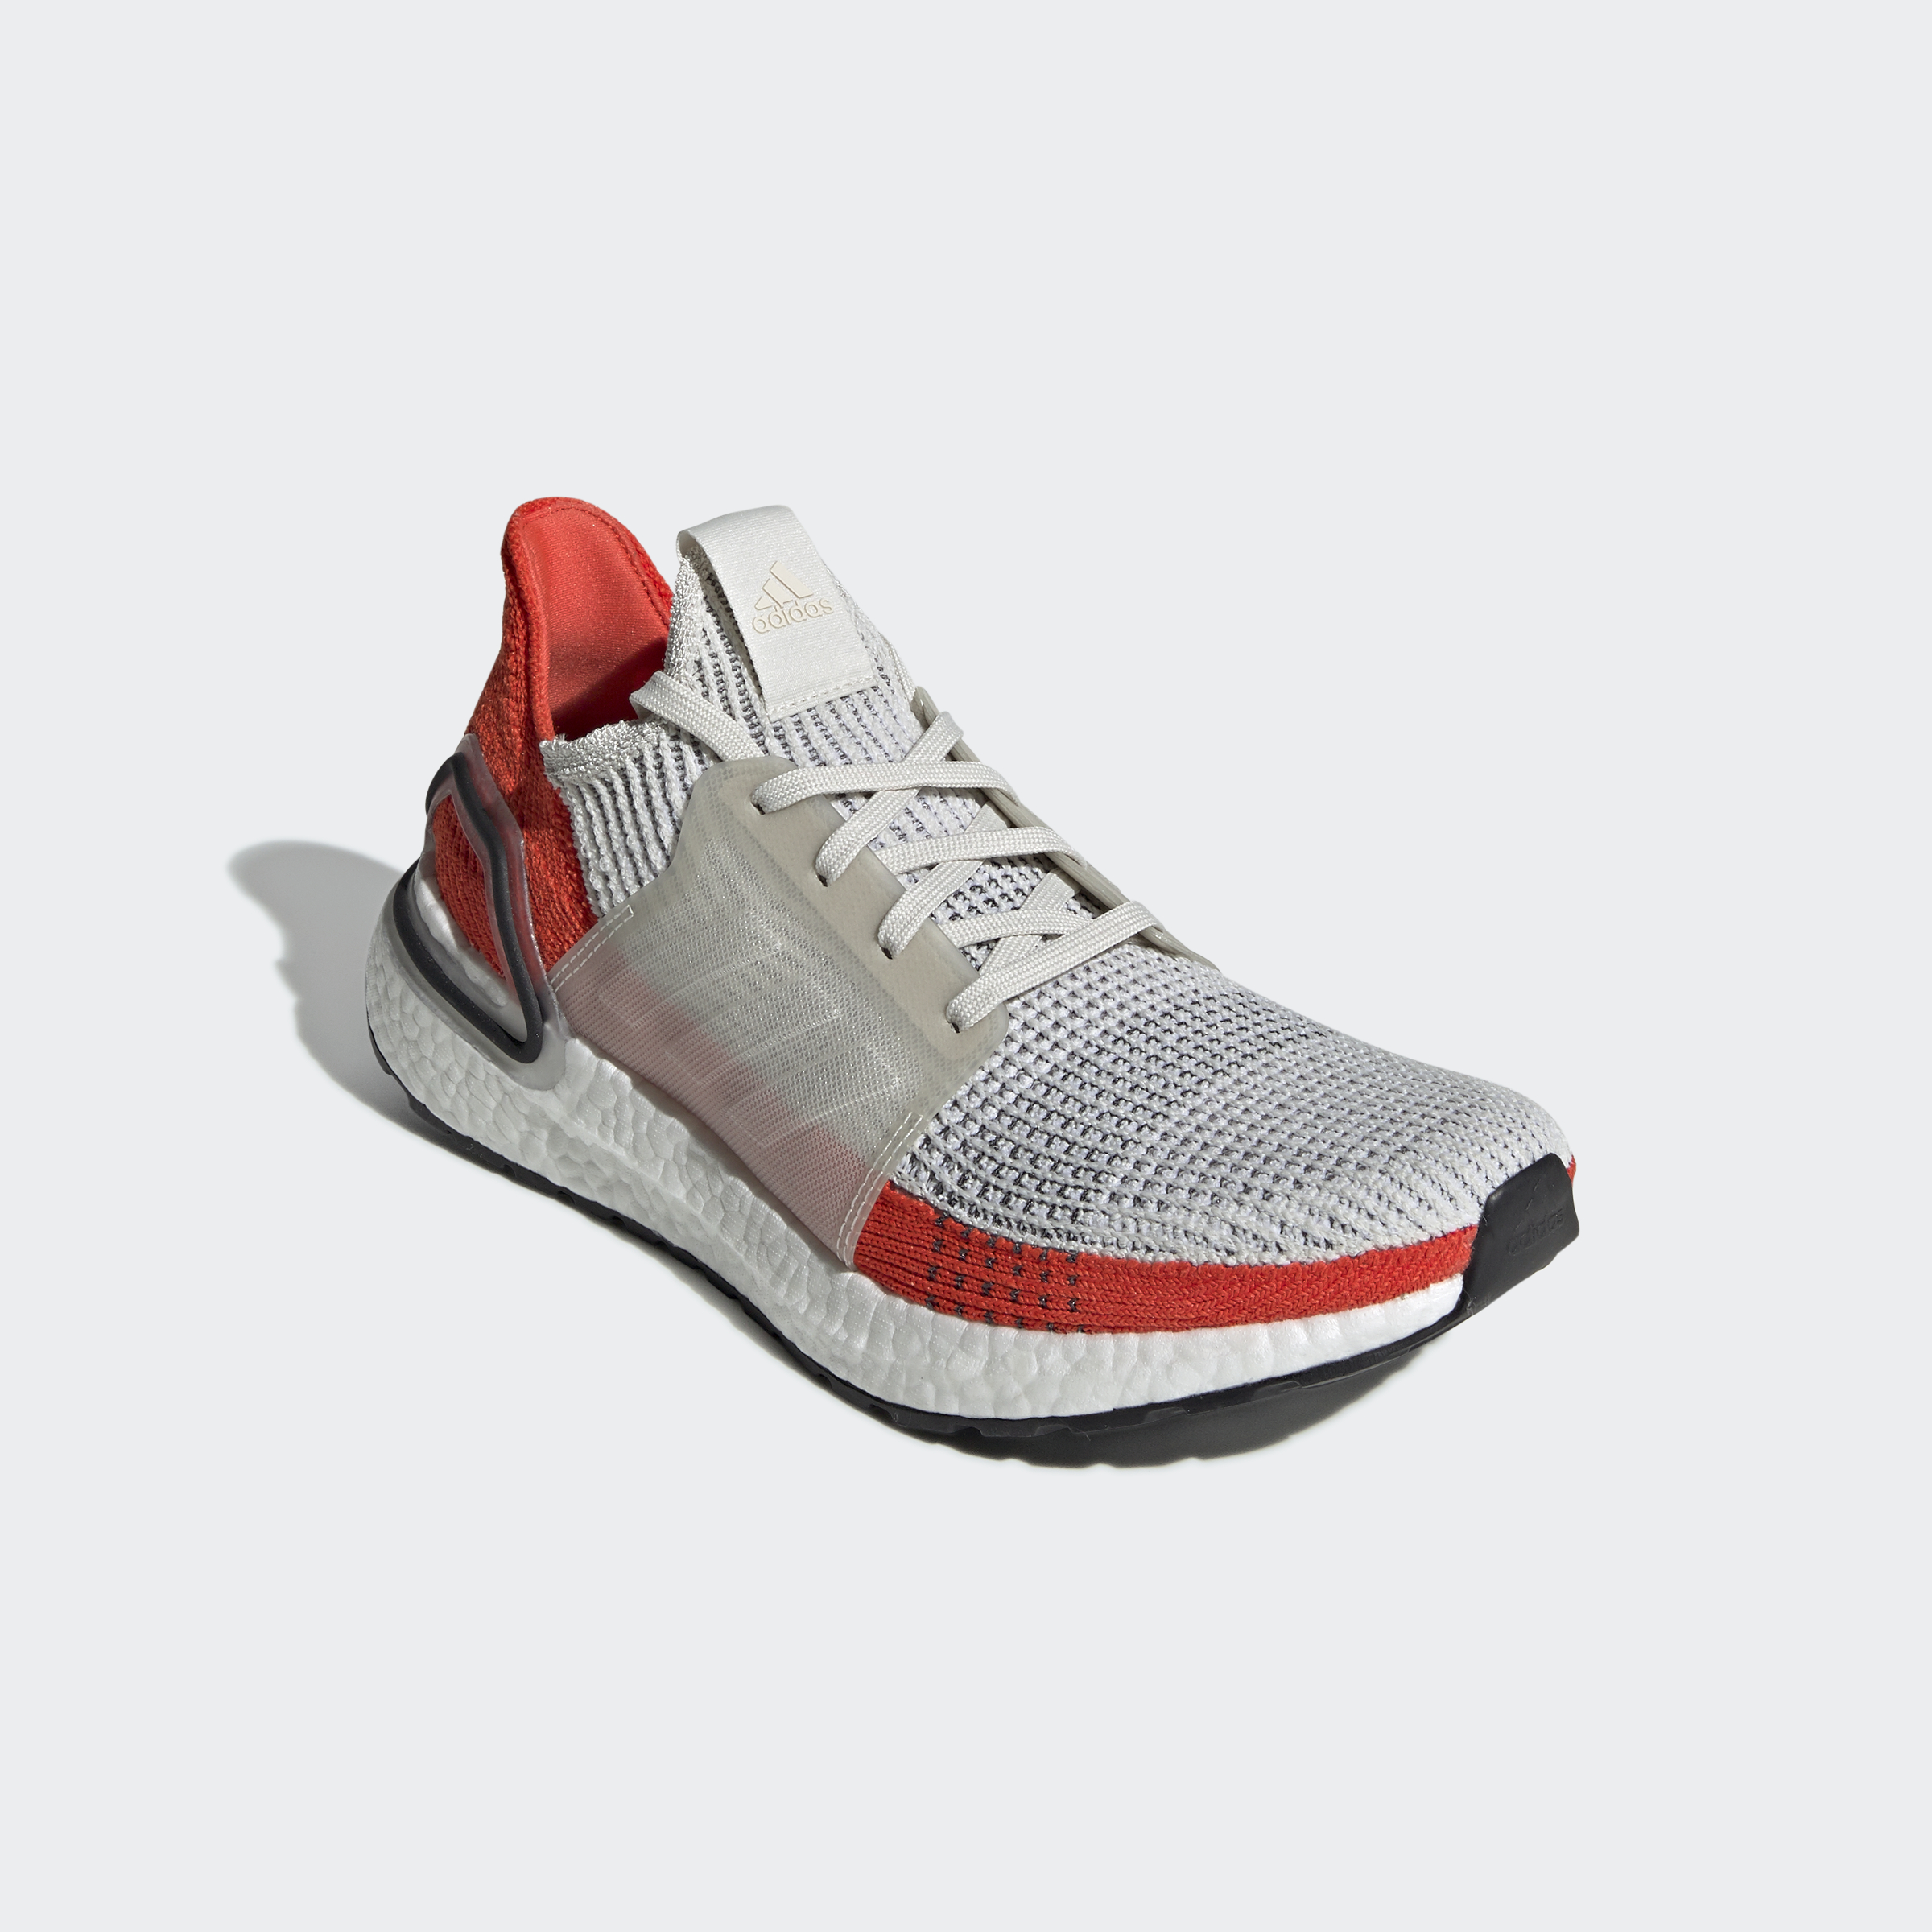 adidas-Ultraboost-19-Shoes-Athletic-amp-Sneakers thumbnail 47